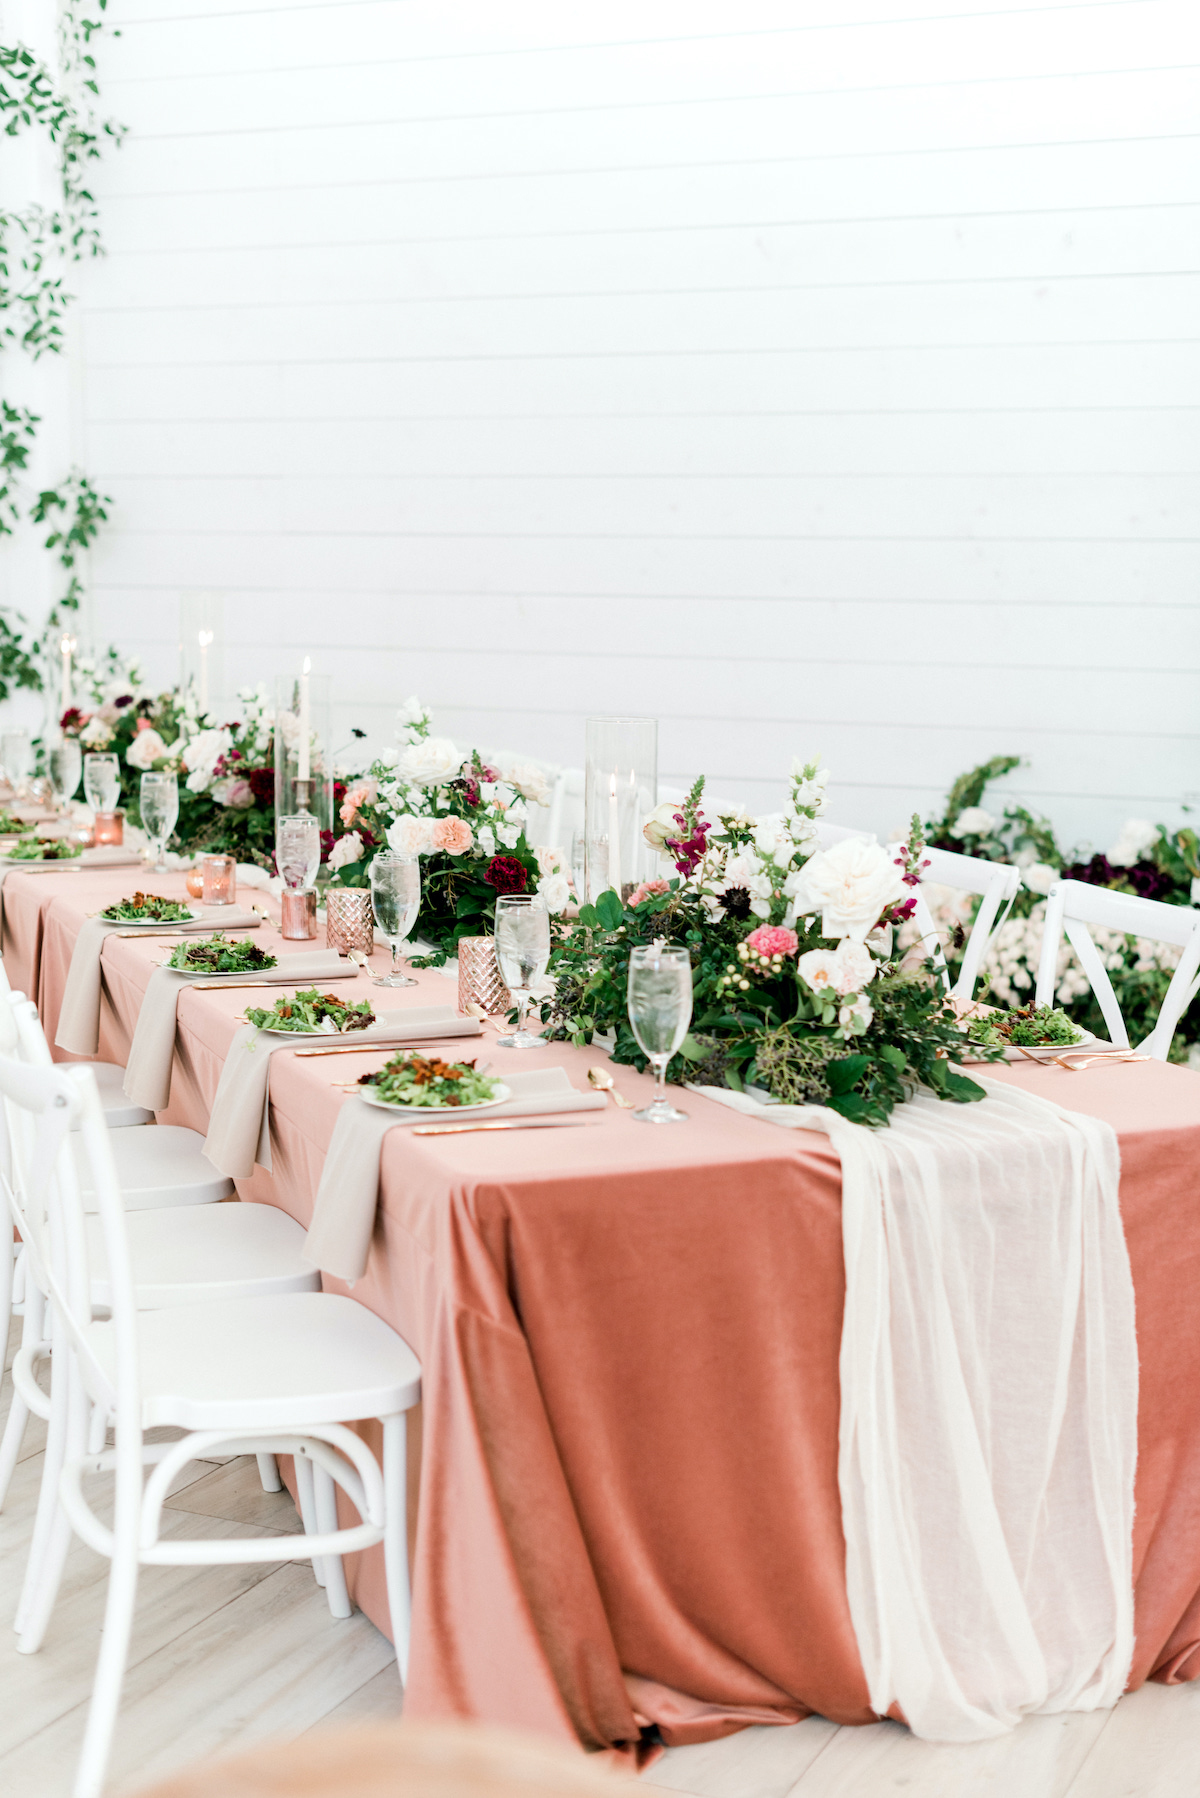 long reception tables with coral clothes and greenery centerpieces